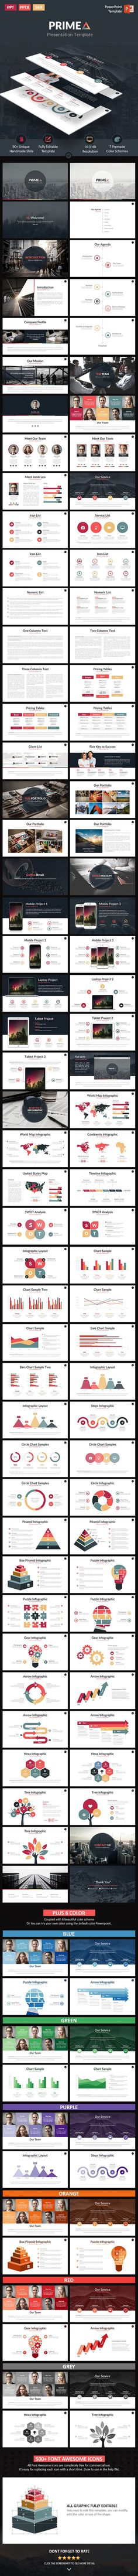 Primea - PowerPoint Presentation Template #design Download: http://graphicriver.net/item/primea-powerpoint-presentation-template/11828976?ref=ksioks: